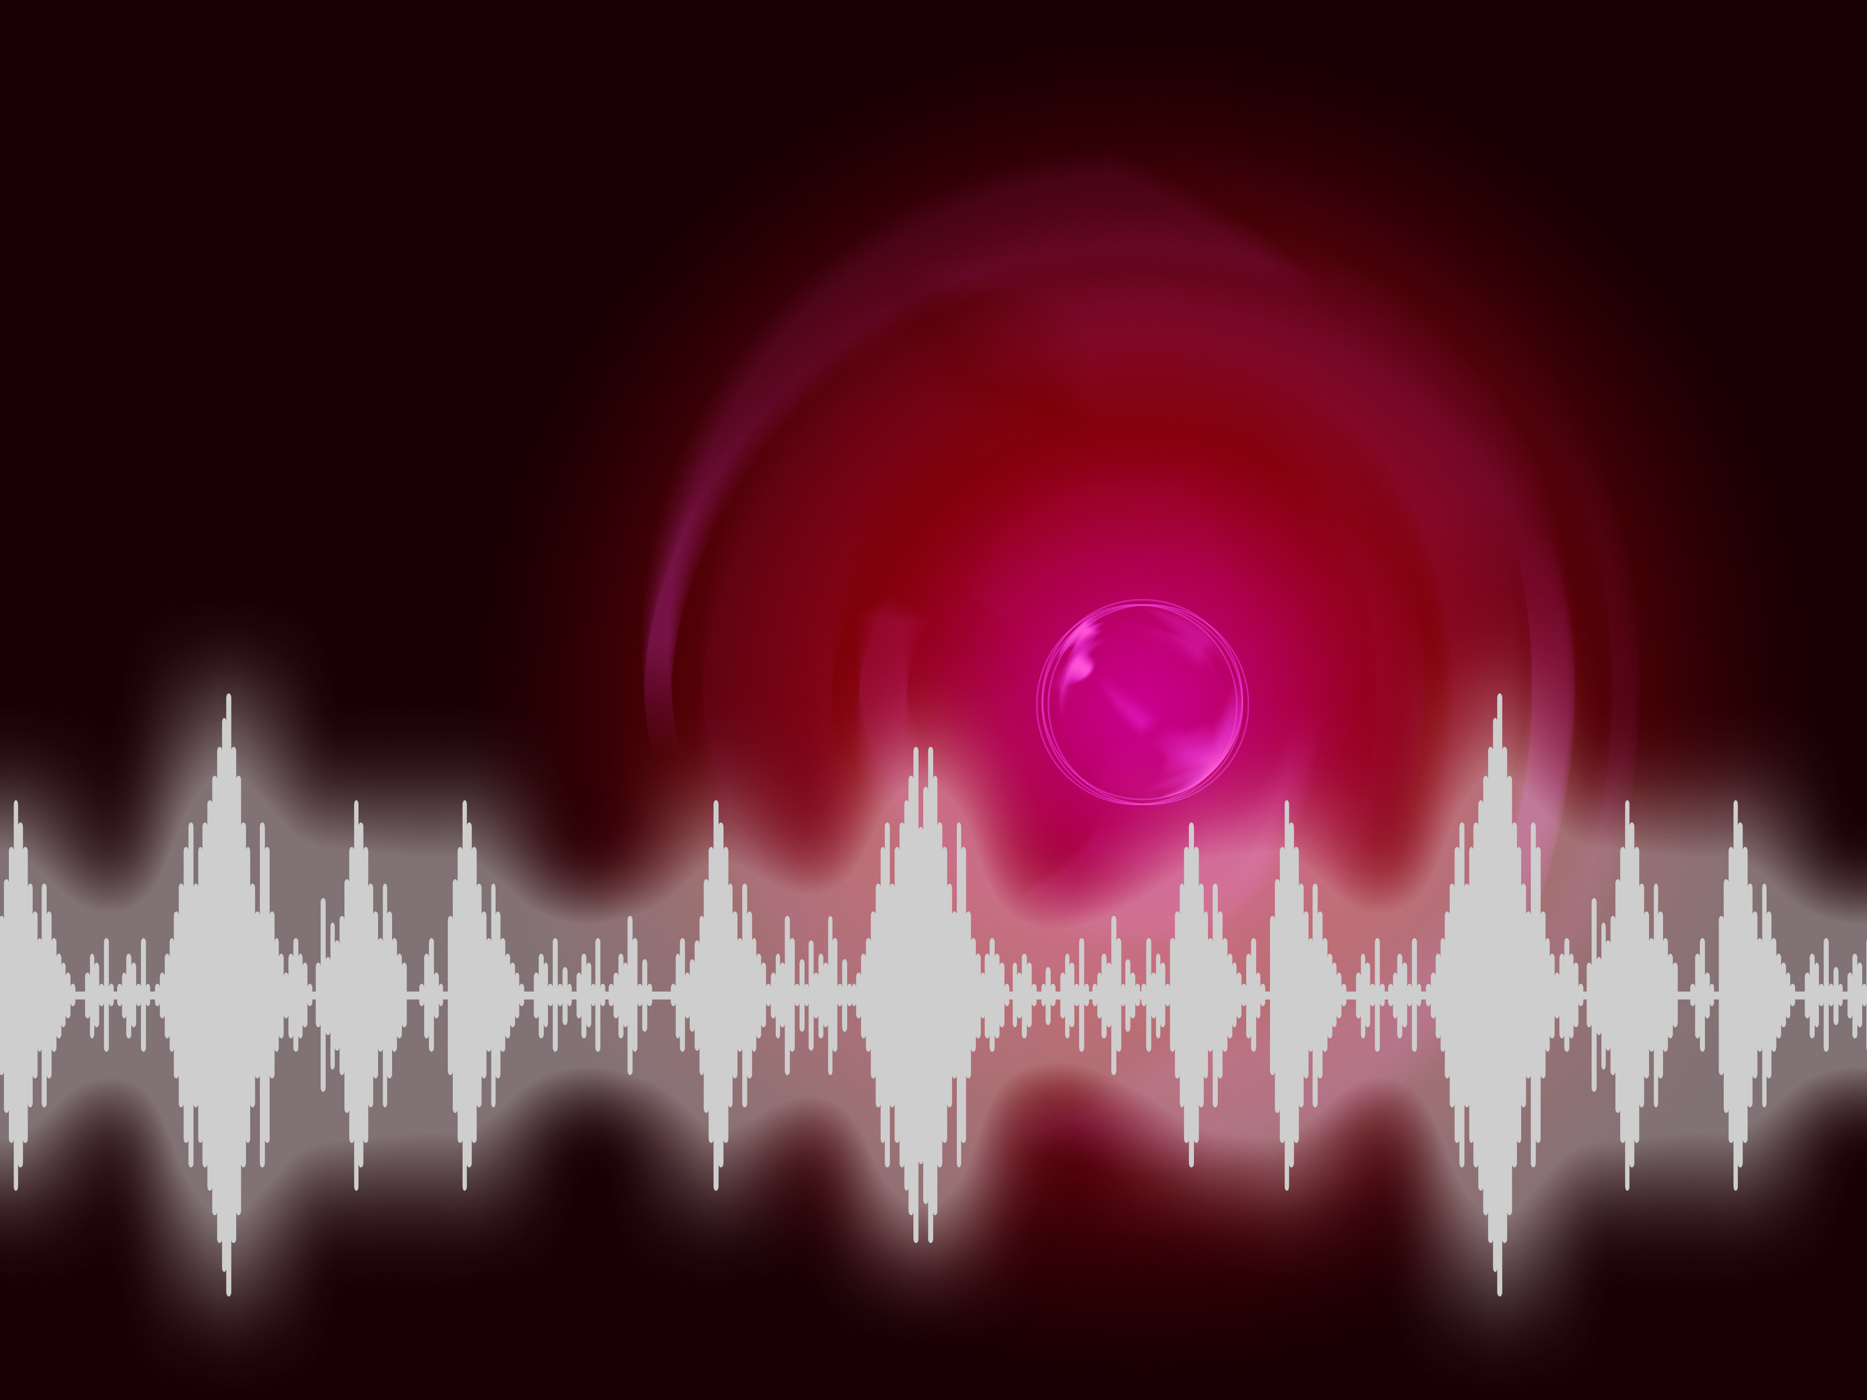 Sound wave background means audio frequency or analyzer photo